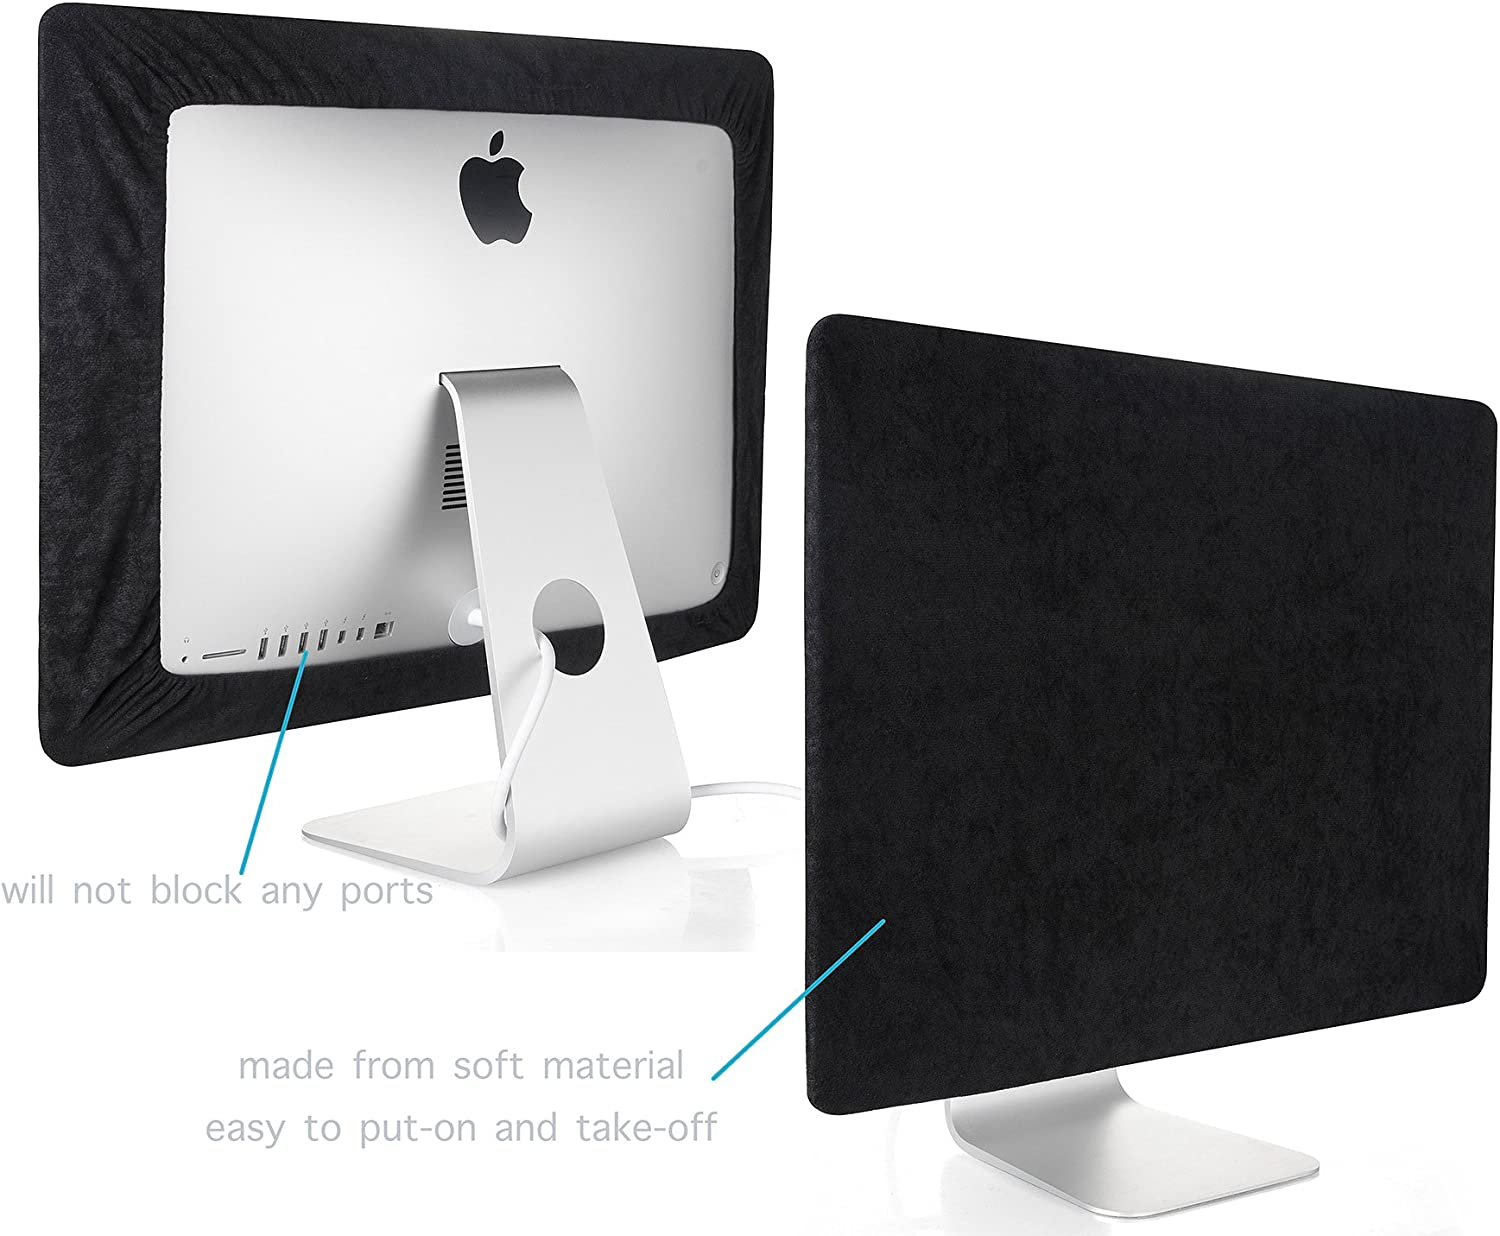 Kuzy - iMac Cover 21 inch | Monitor Cover 21 inch Computer Screen Protector (Models A1418 A1311 A1224) Newest Version Retina 4K iMac 21.5 inch Cover - Black